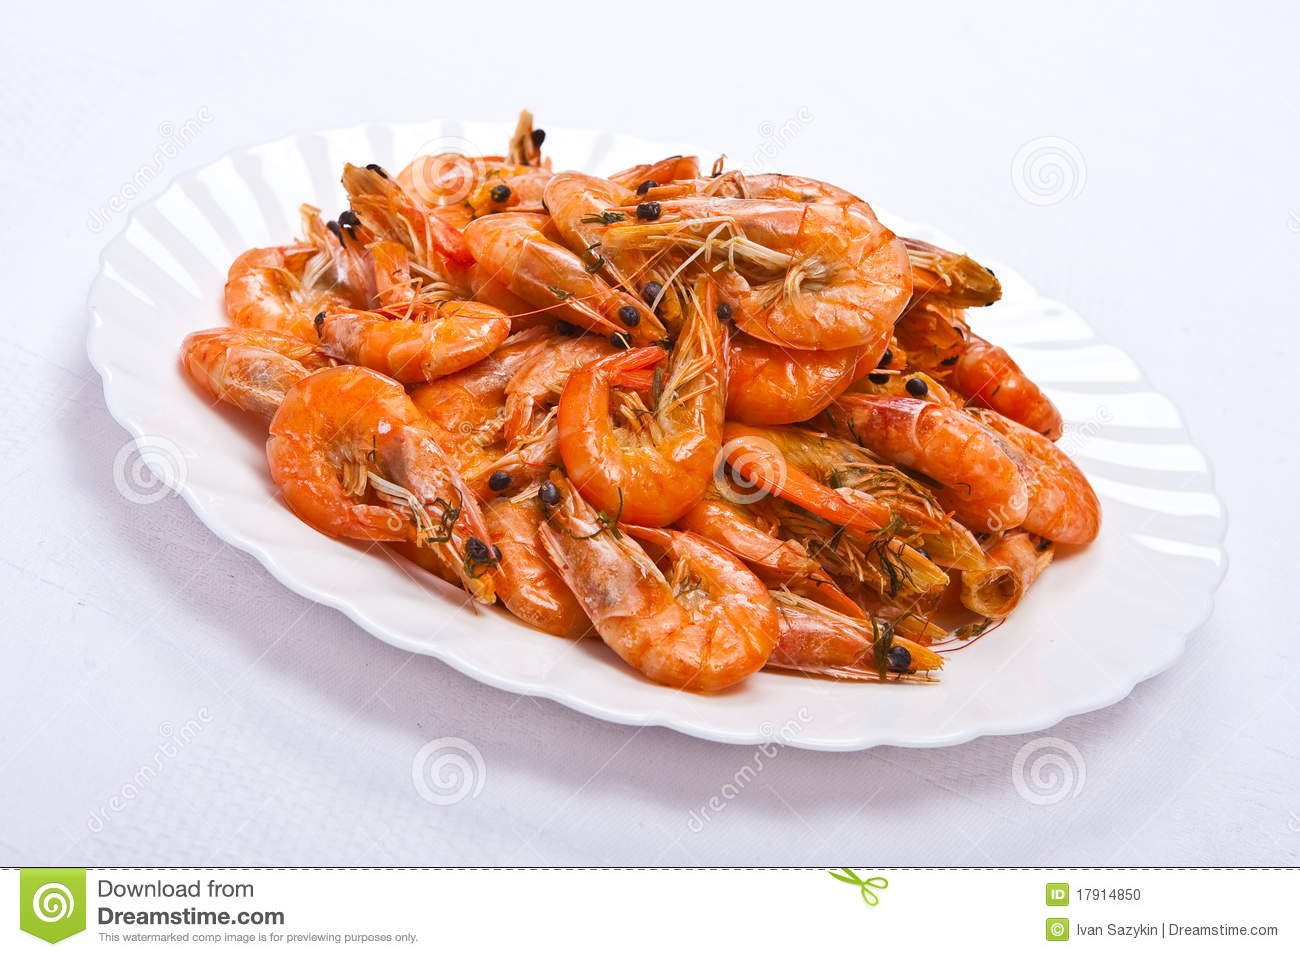 Cooked Shrimp Clipart Cooked shrimps on plate